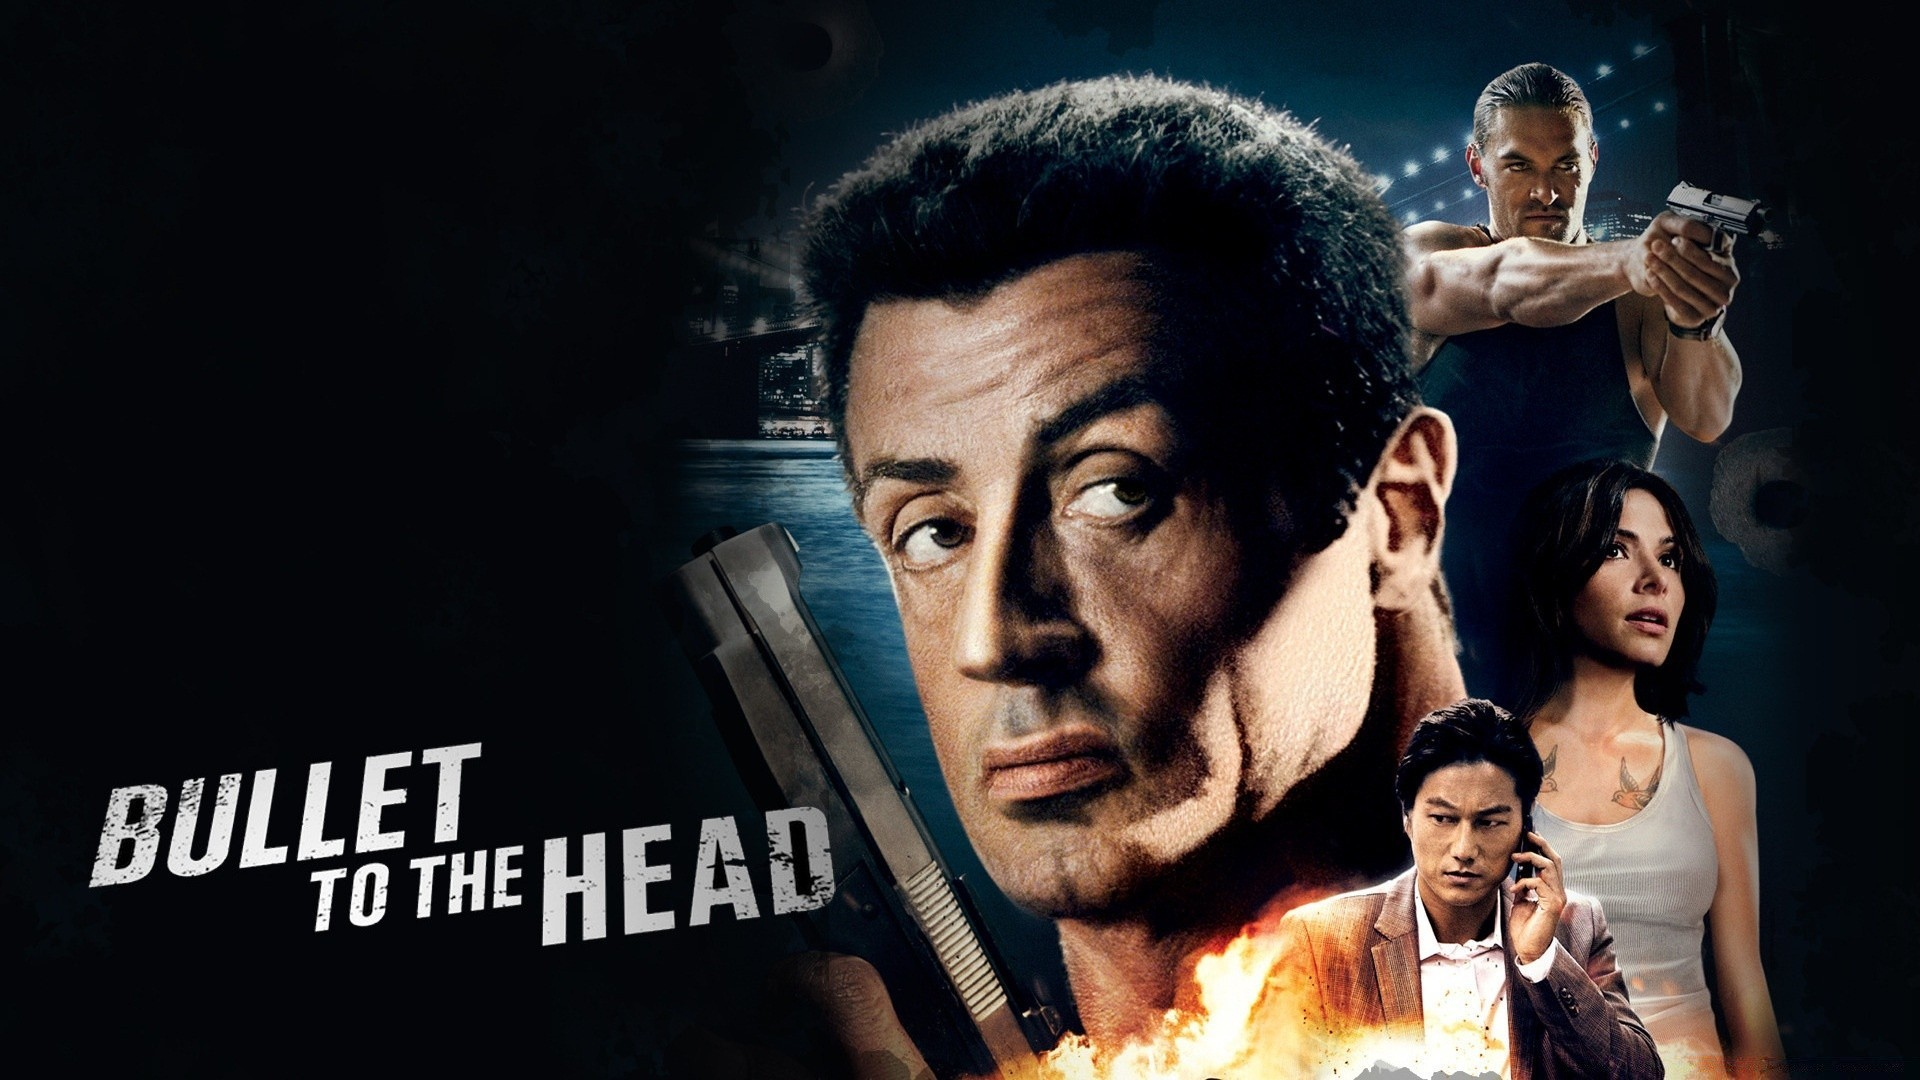 Bullet to the Head Movie - Phone wallpapers